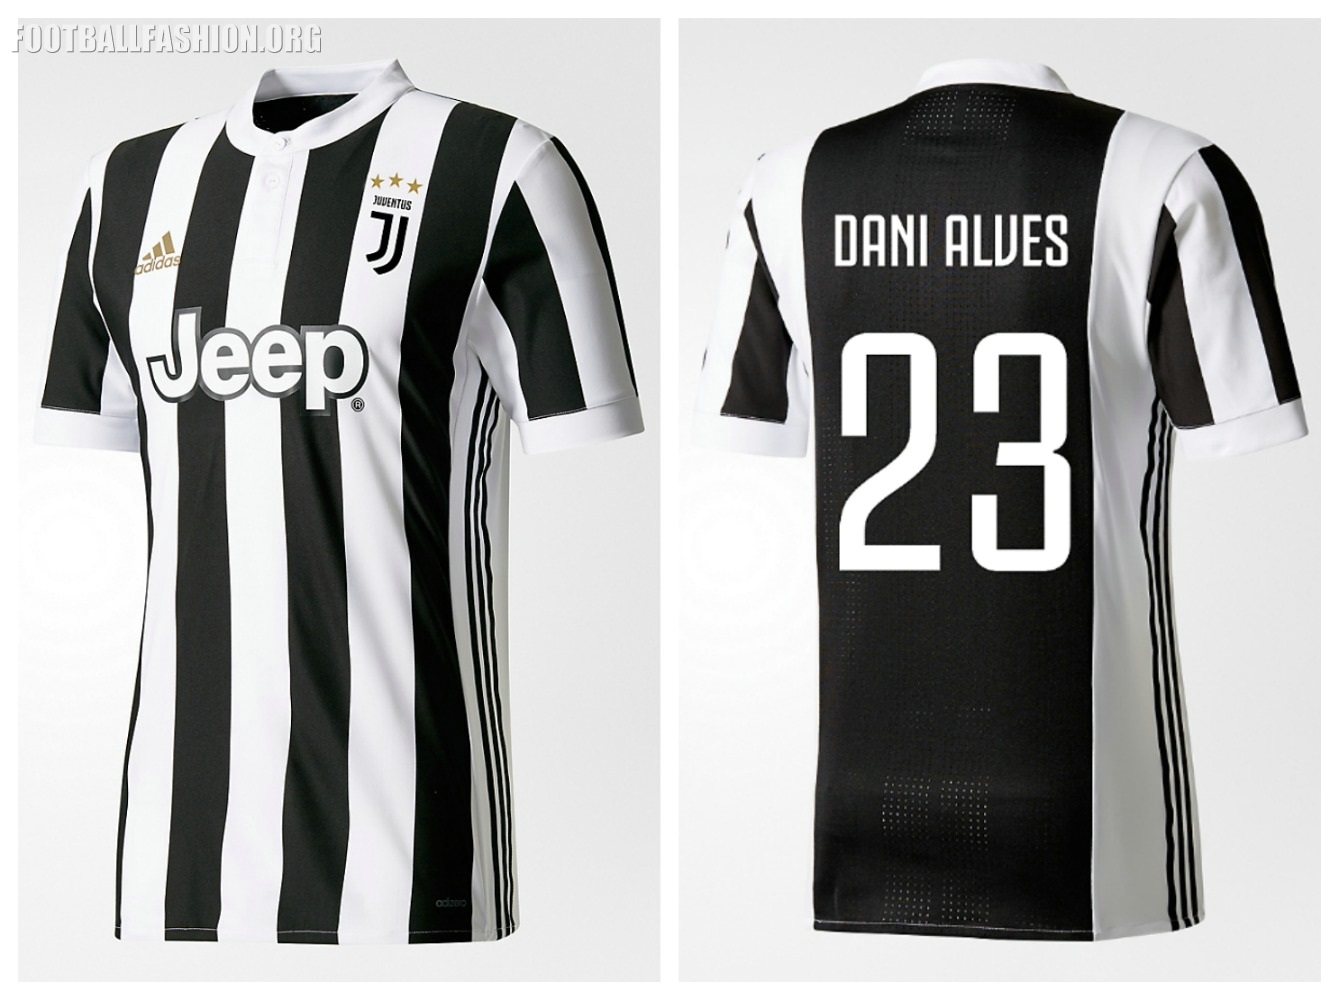 0e5ffa314 Juventus 2017 18 adidas Home Kit - FOOTBALL FASHION.ORG